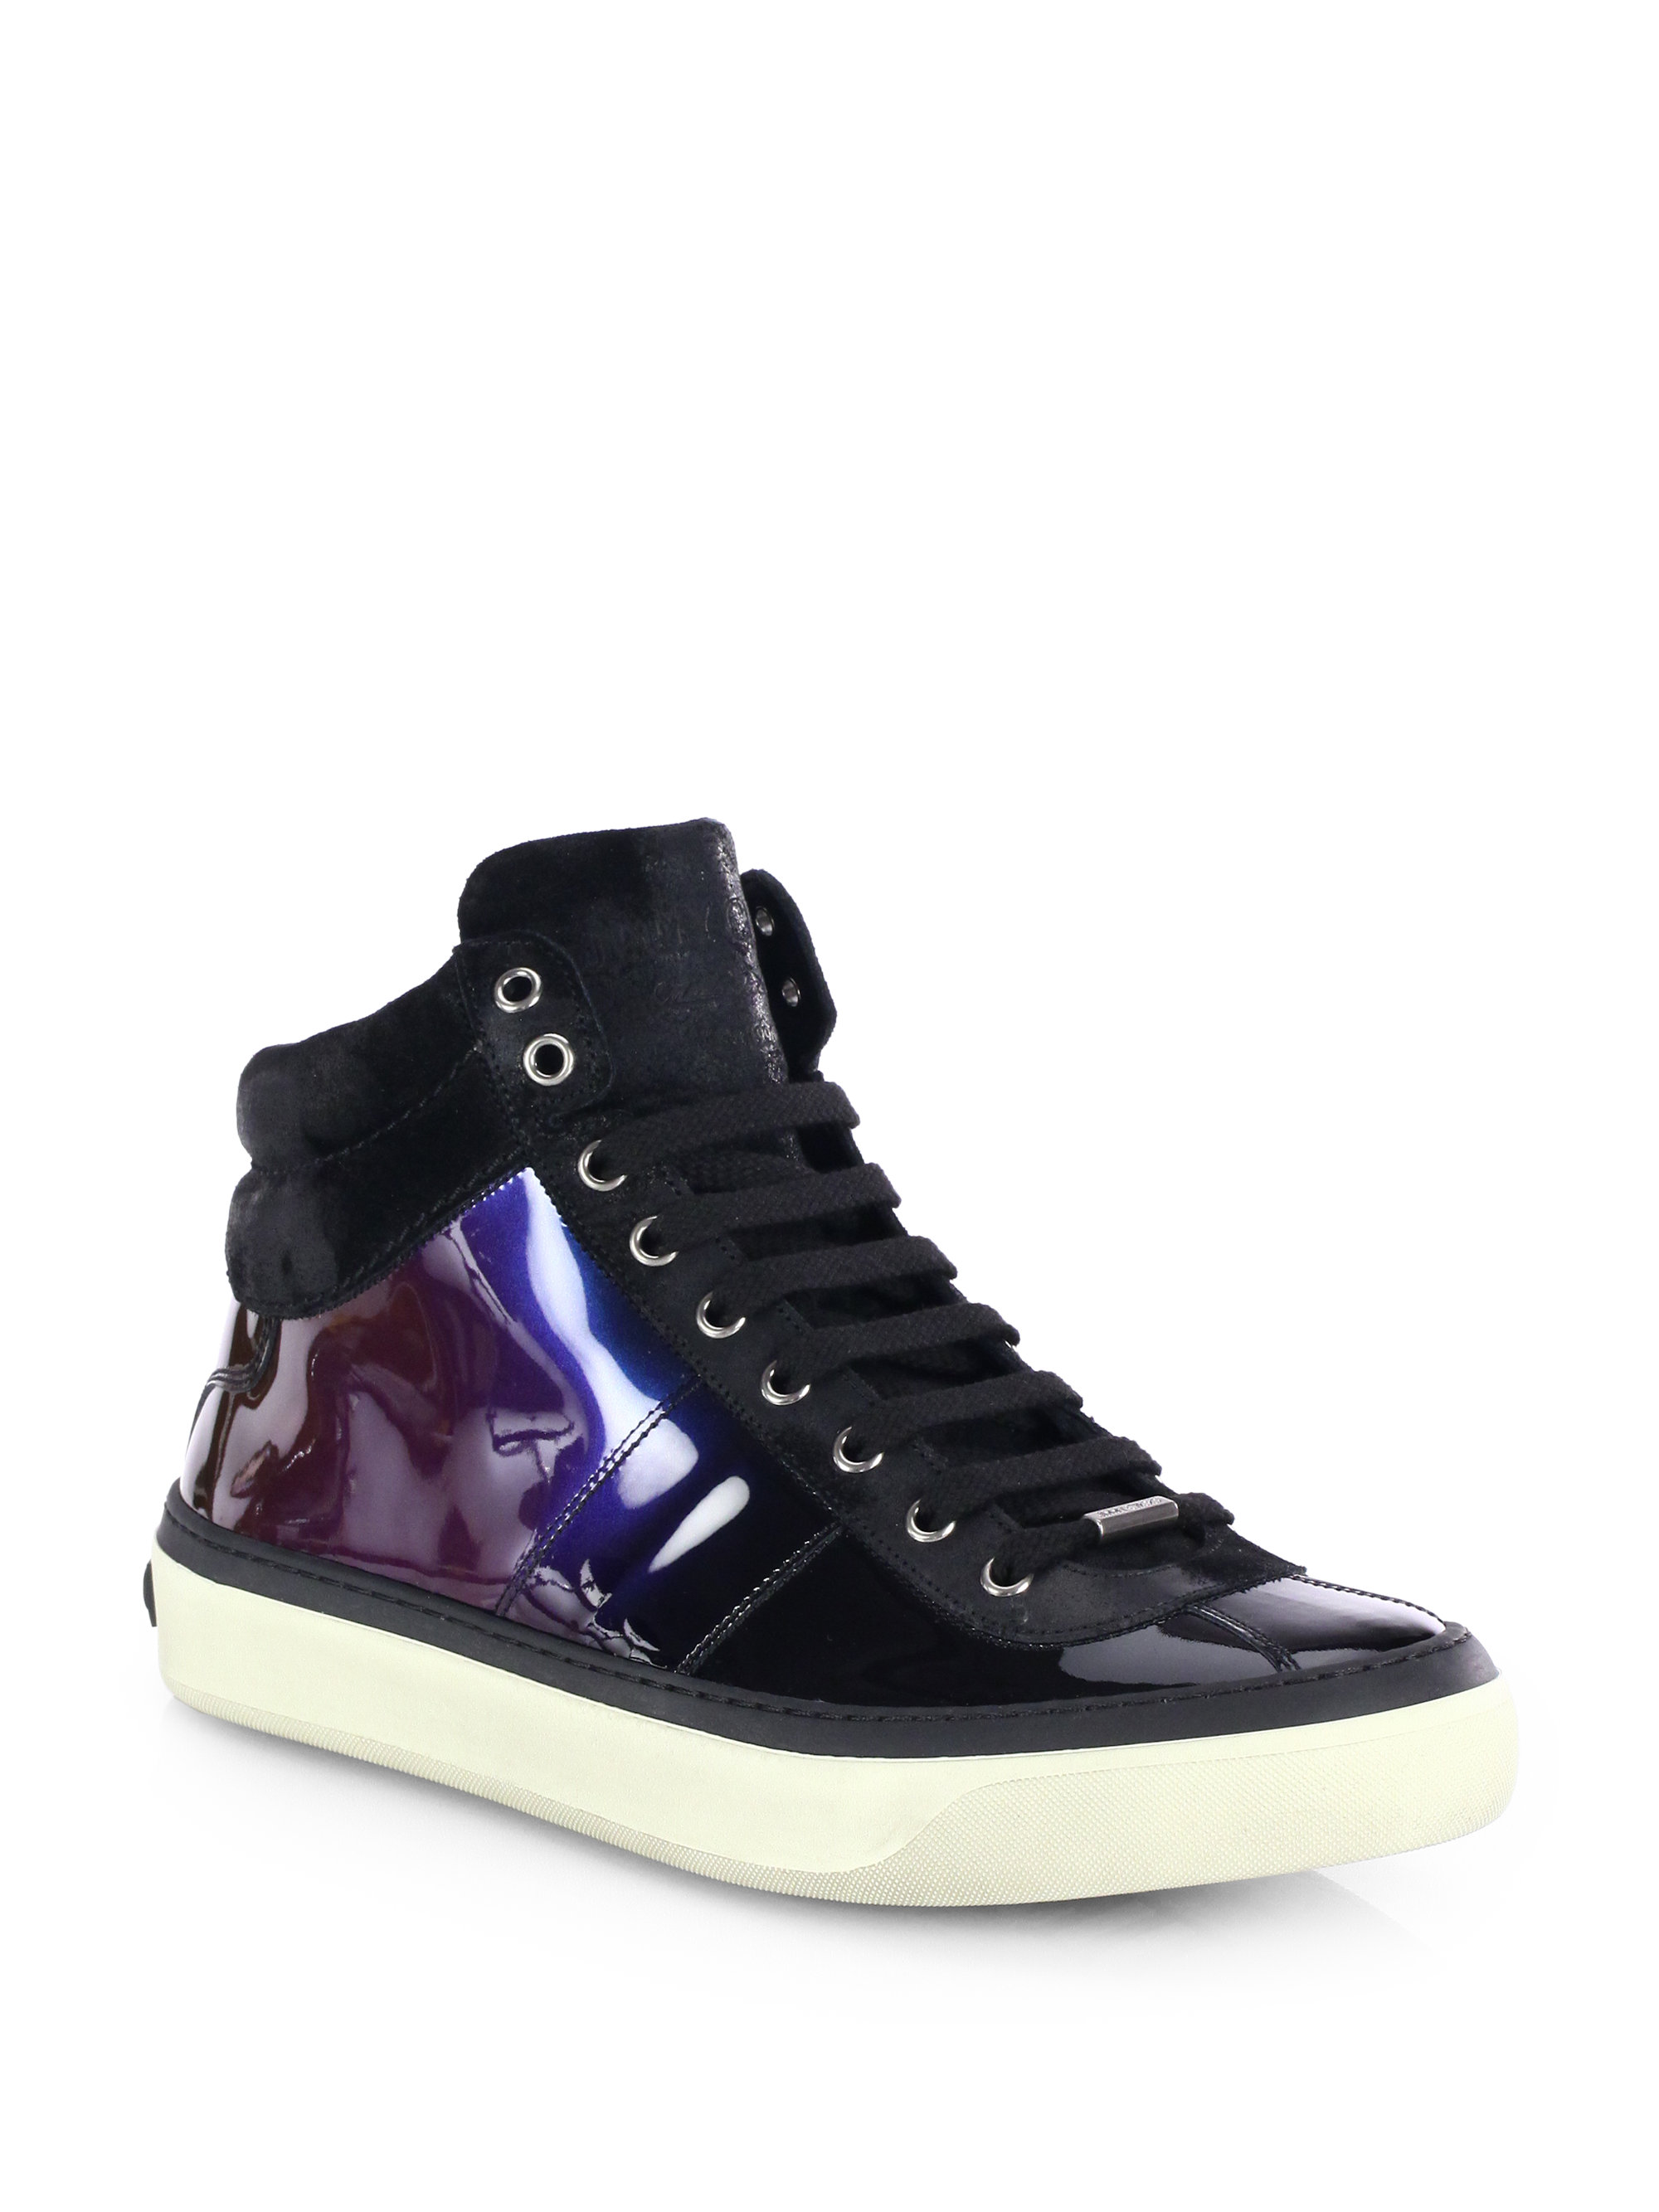 Jimmy choo Belgravi Hologram High-Top Sneakers in Purple